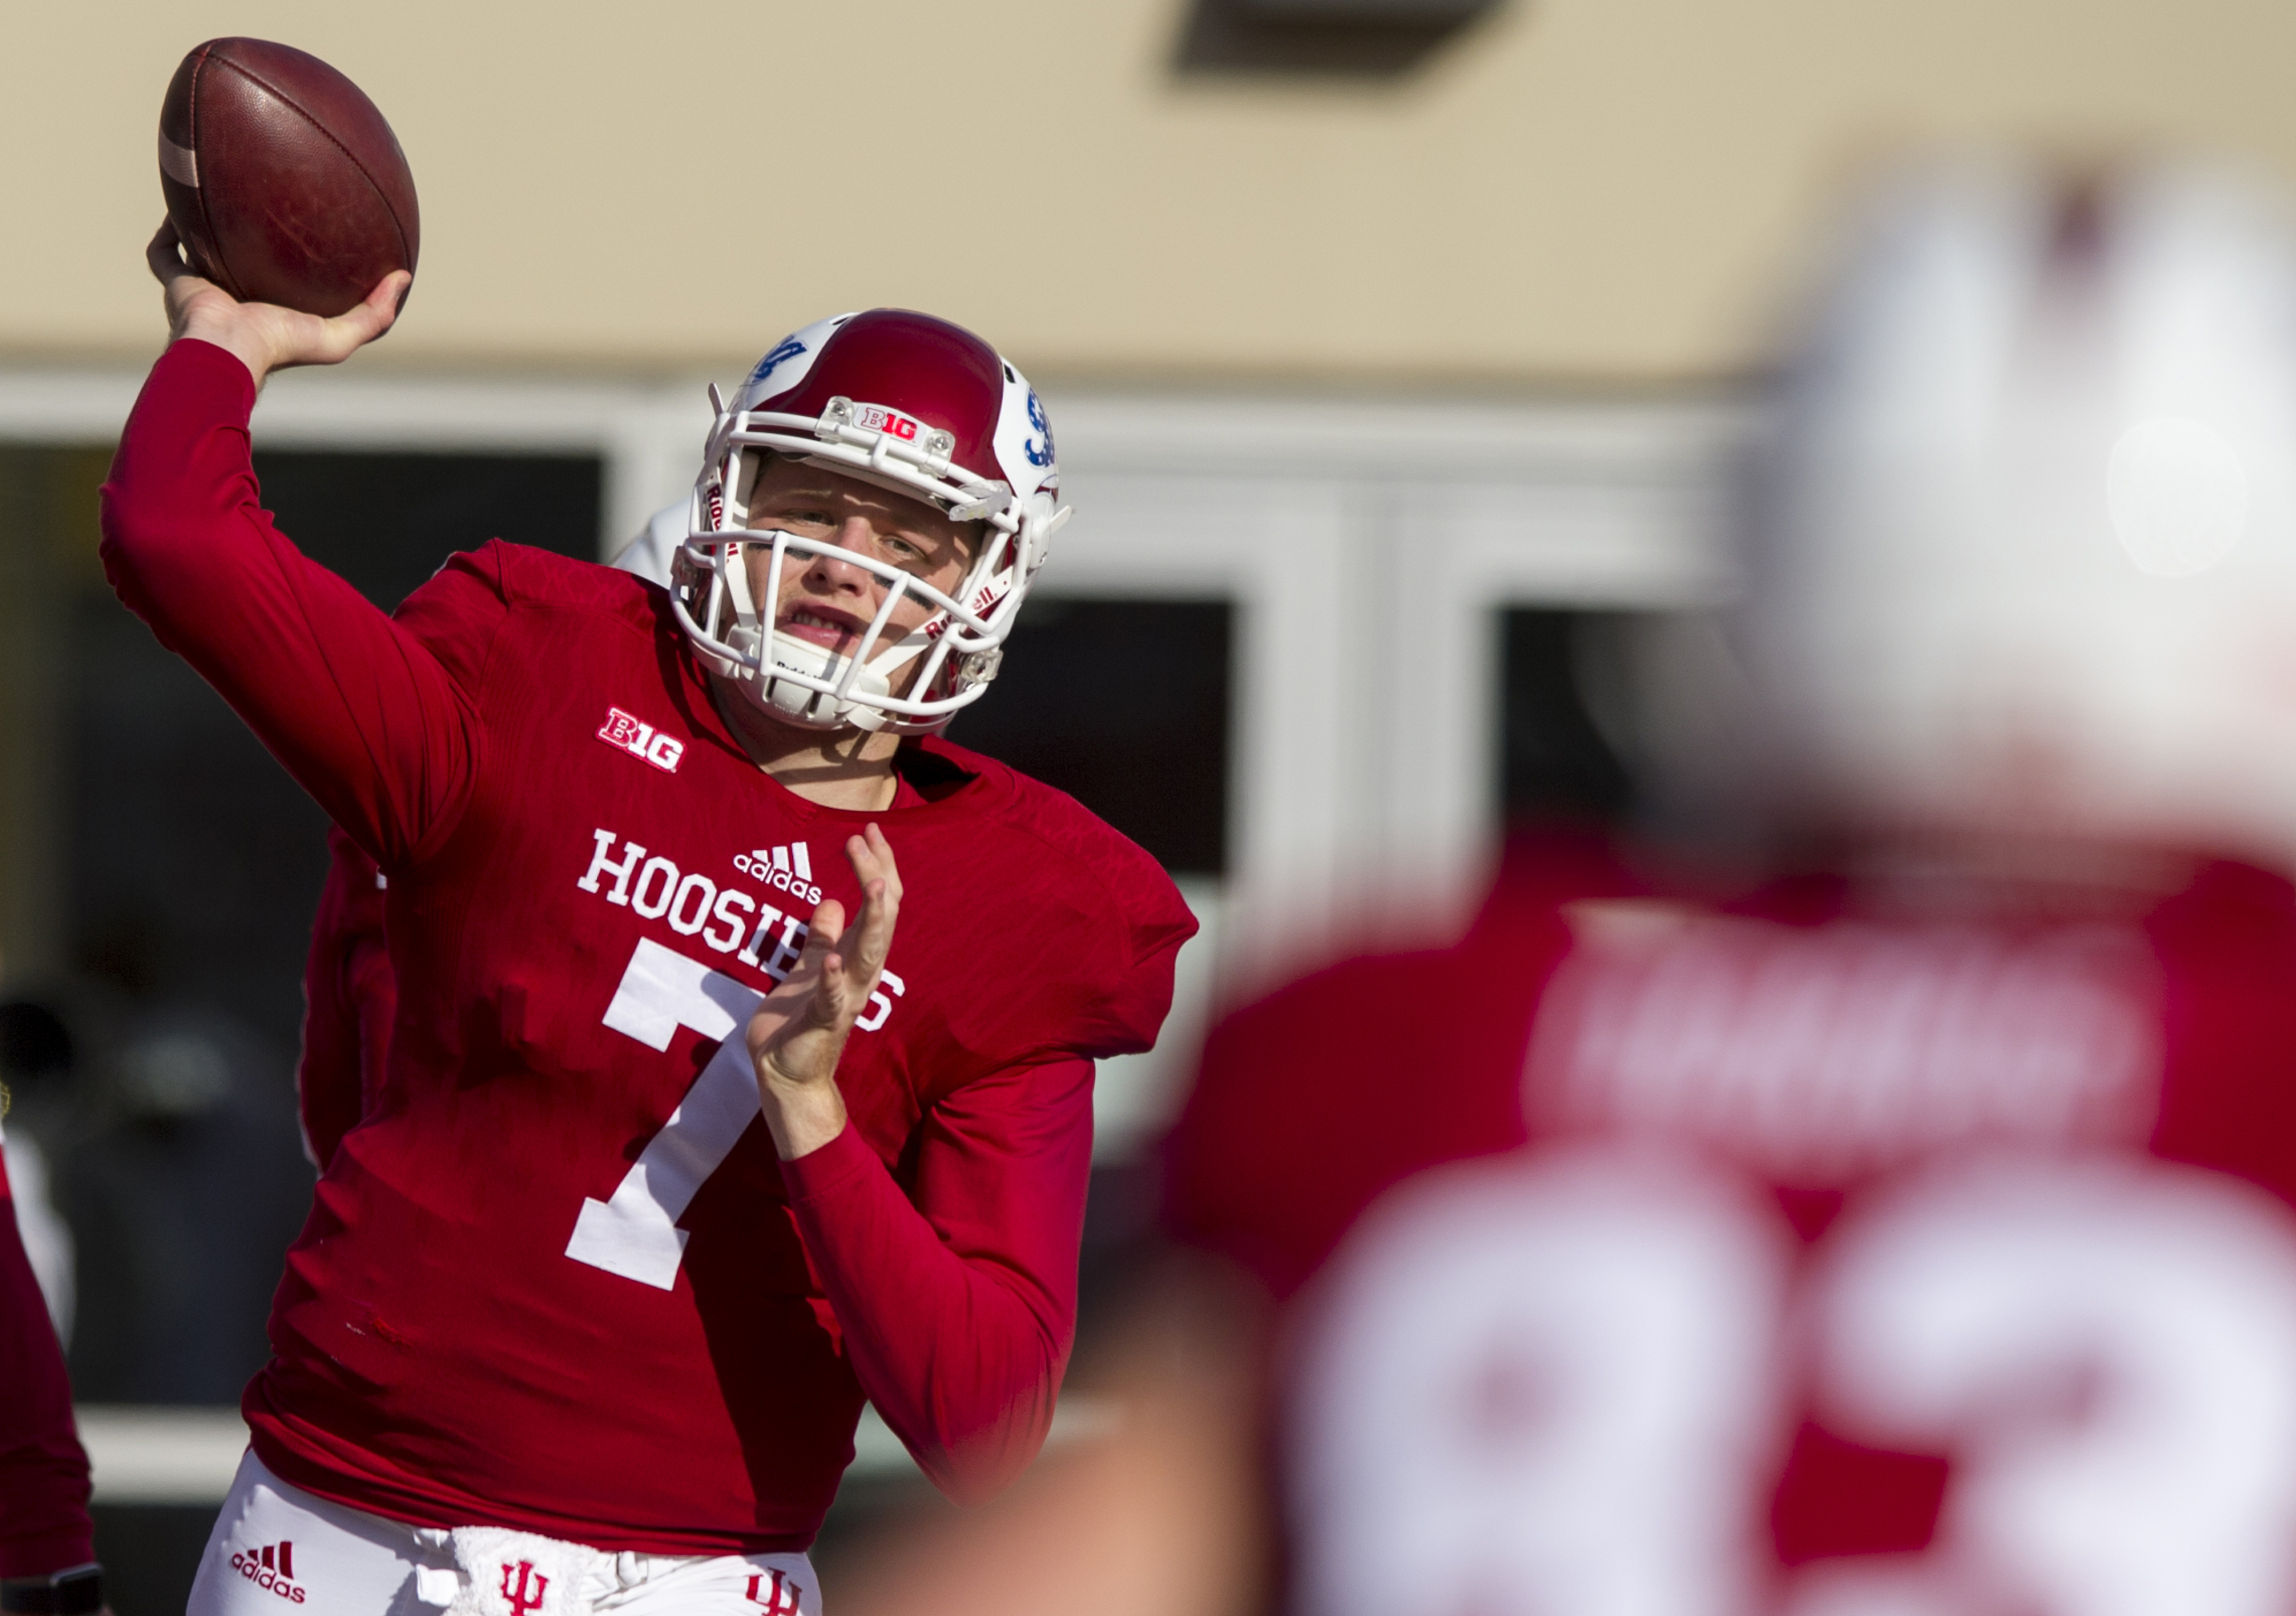 Indiana quarterback Nate Sudfeld (7) warms up on the field before the start of an NCAA college football game in Bloomington, Ind., Saturday, Nov. 7, 2015. (AP Photo/Doug McSchooler)